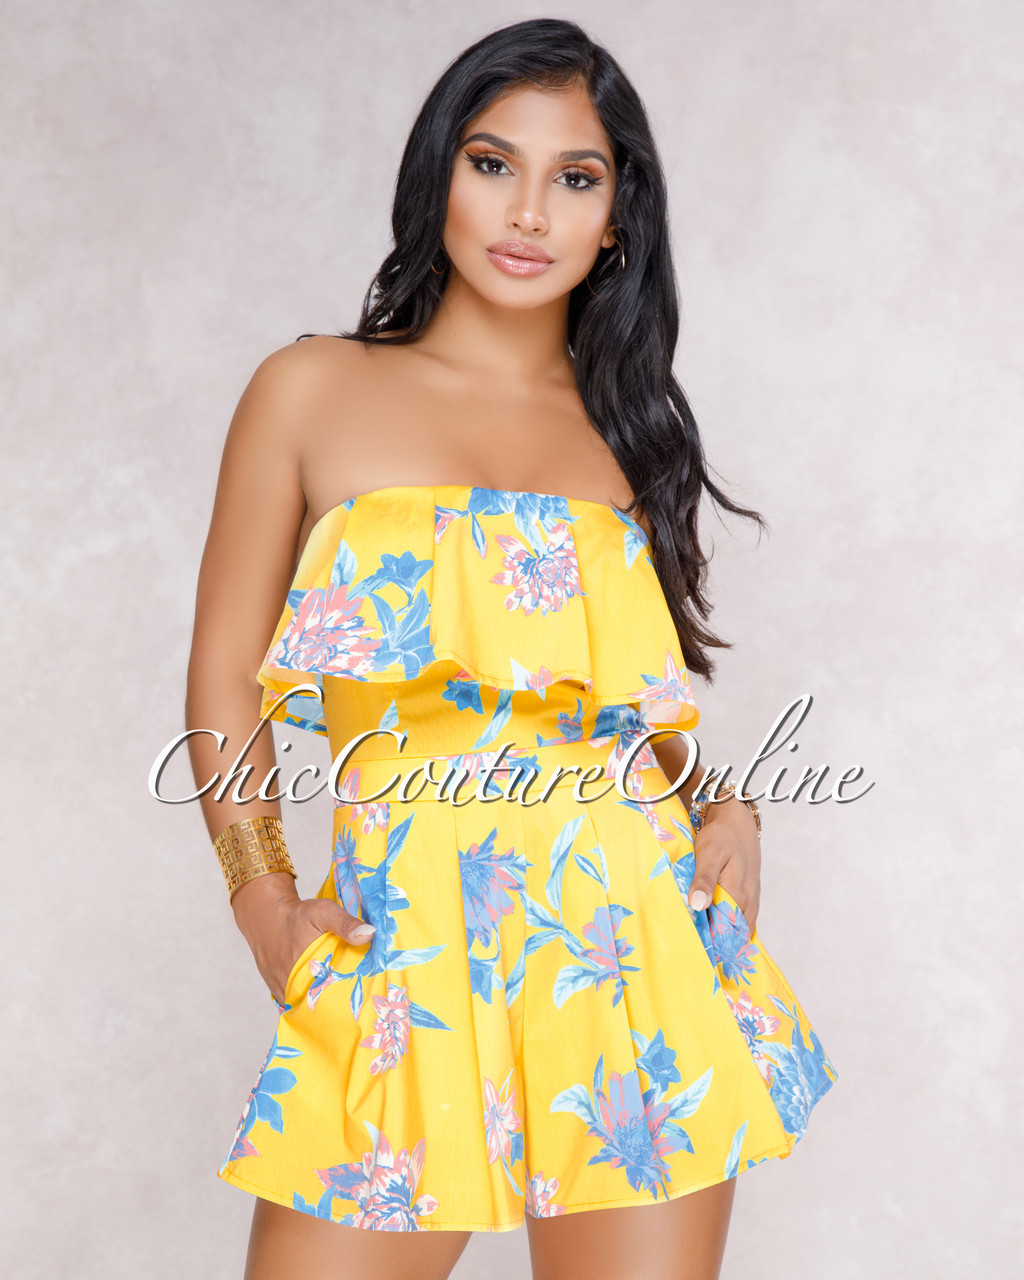 9ef09ddf4aab Sally Yellow Floral Ruffle Romper. Price   50.00. Image 1